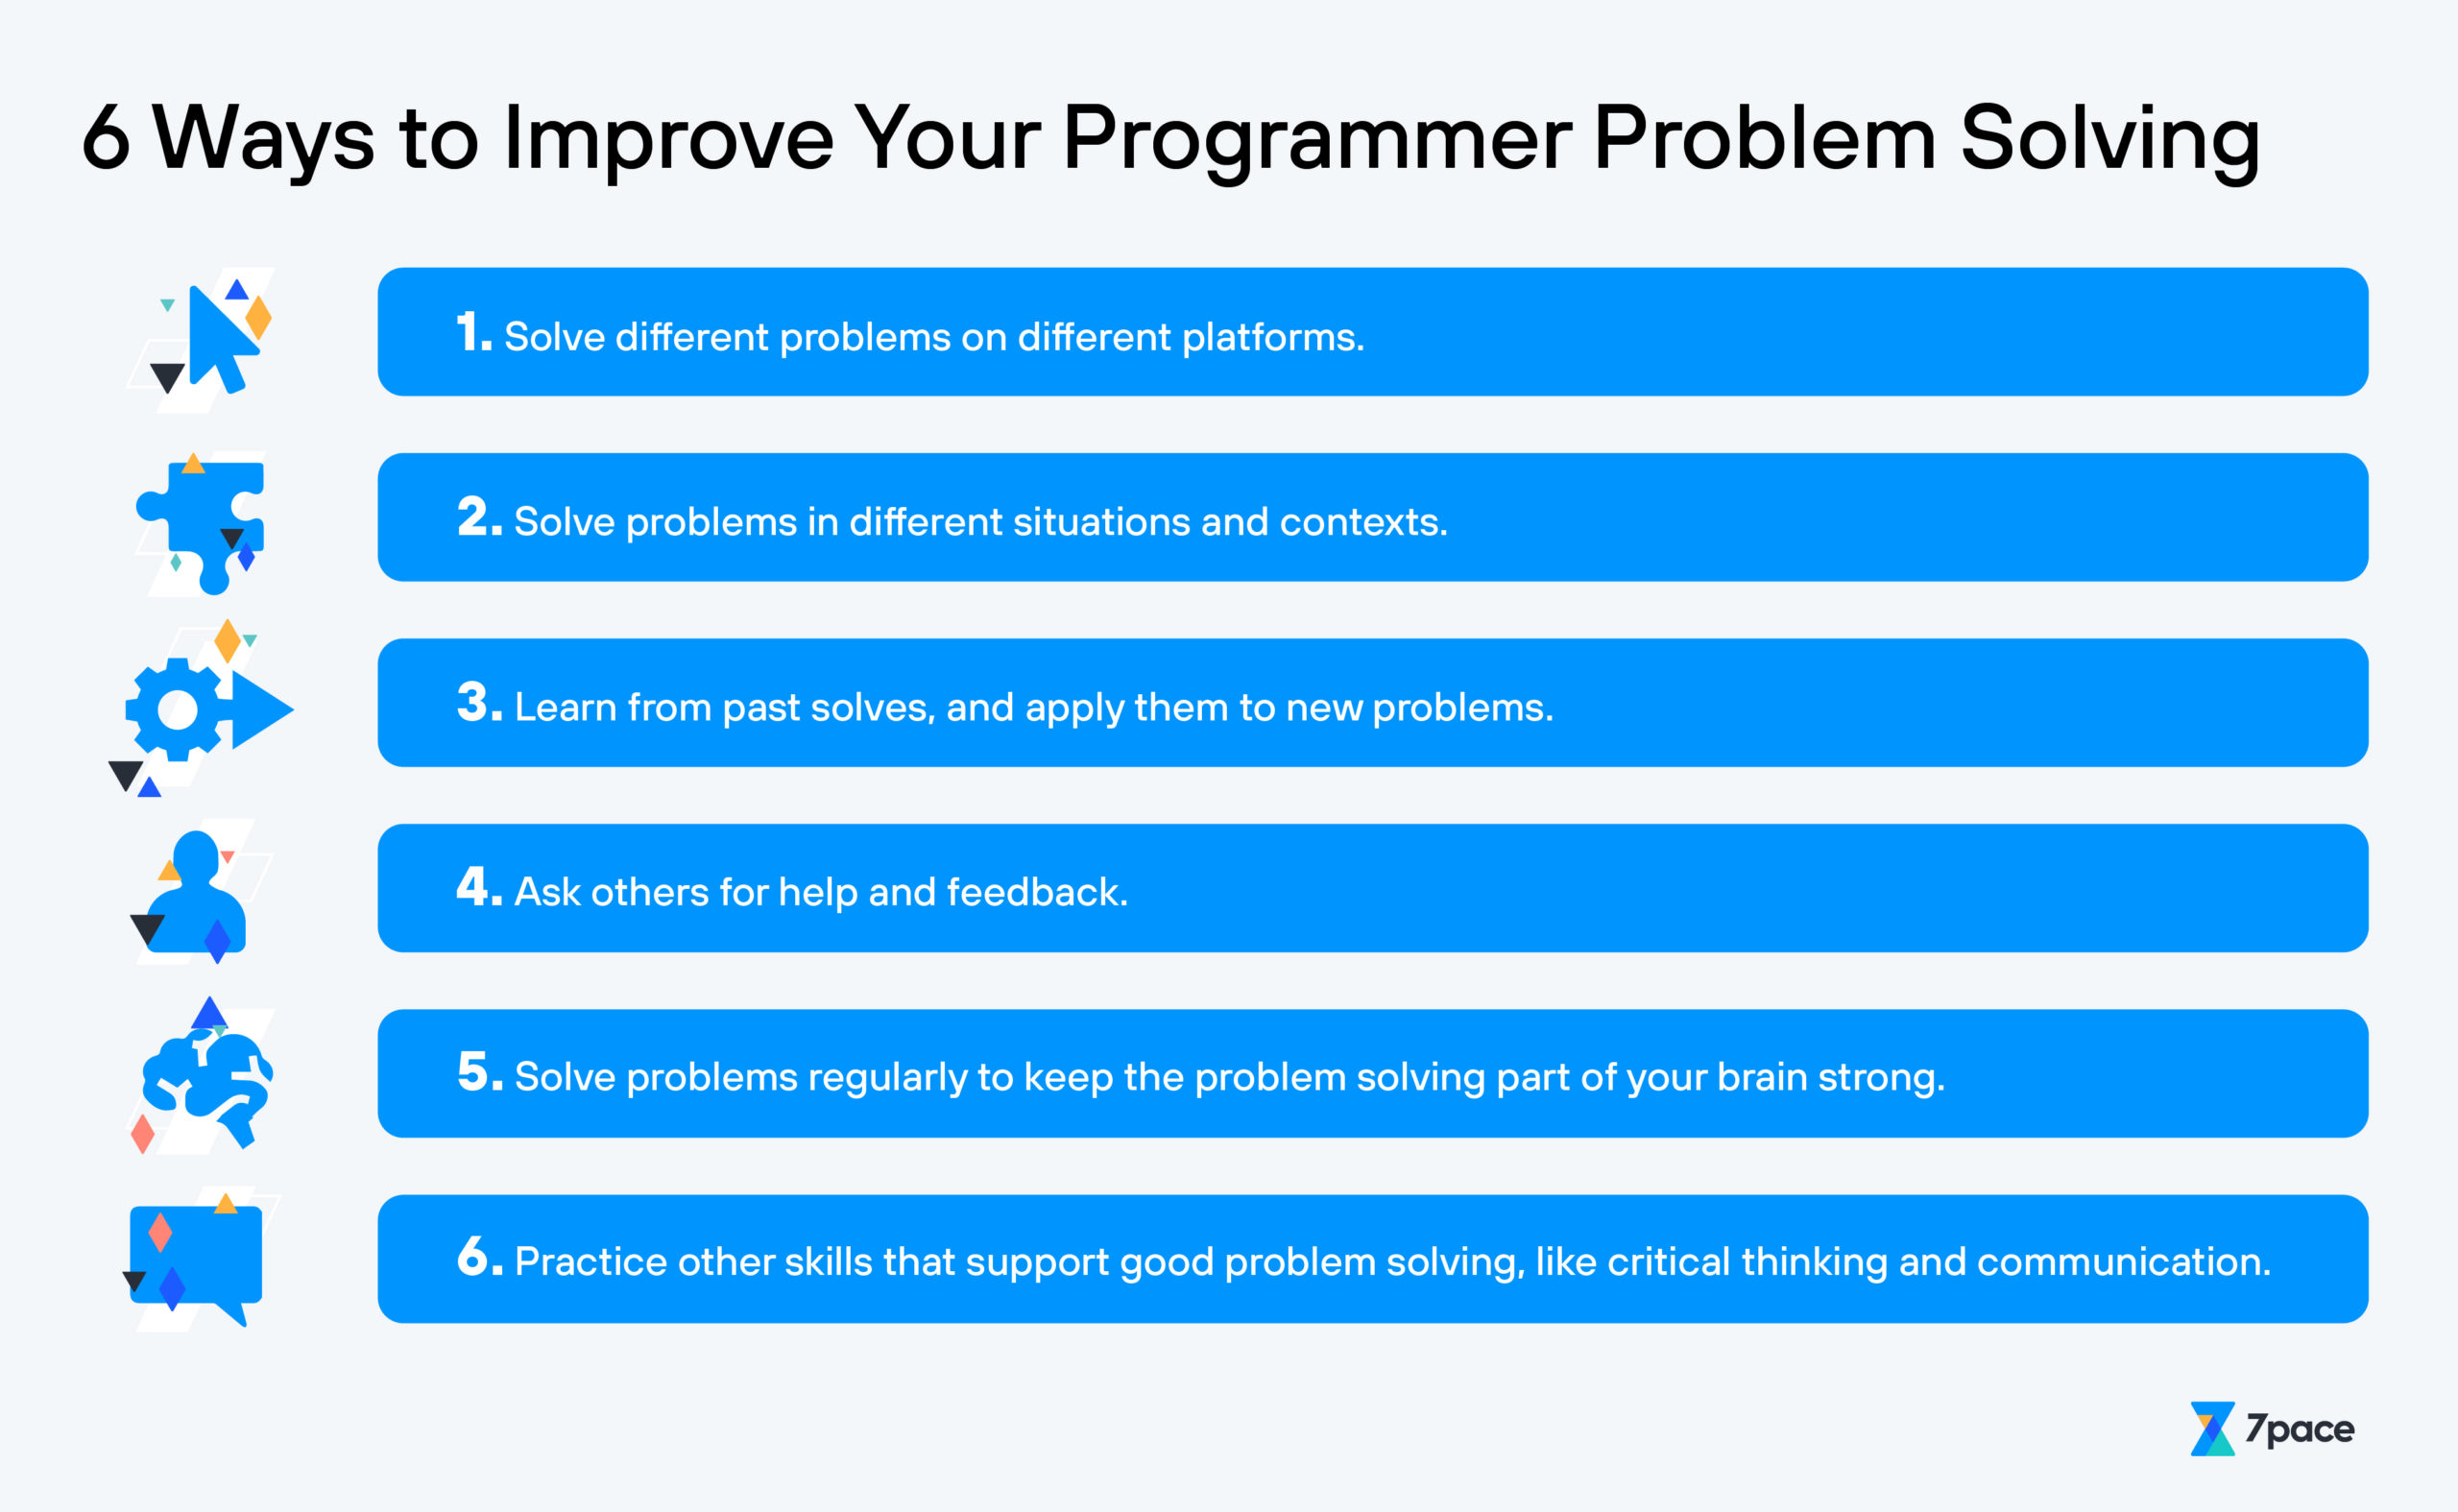 6 Ways to Get Better at Problem Solving